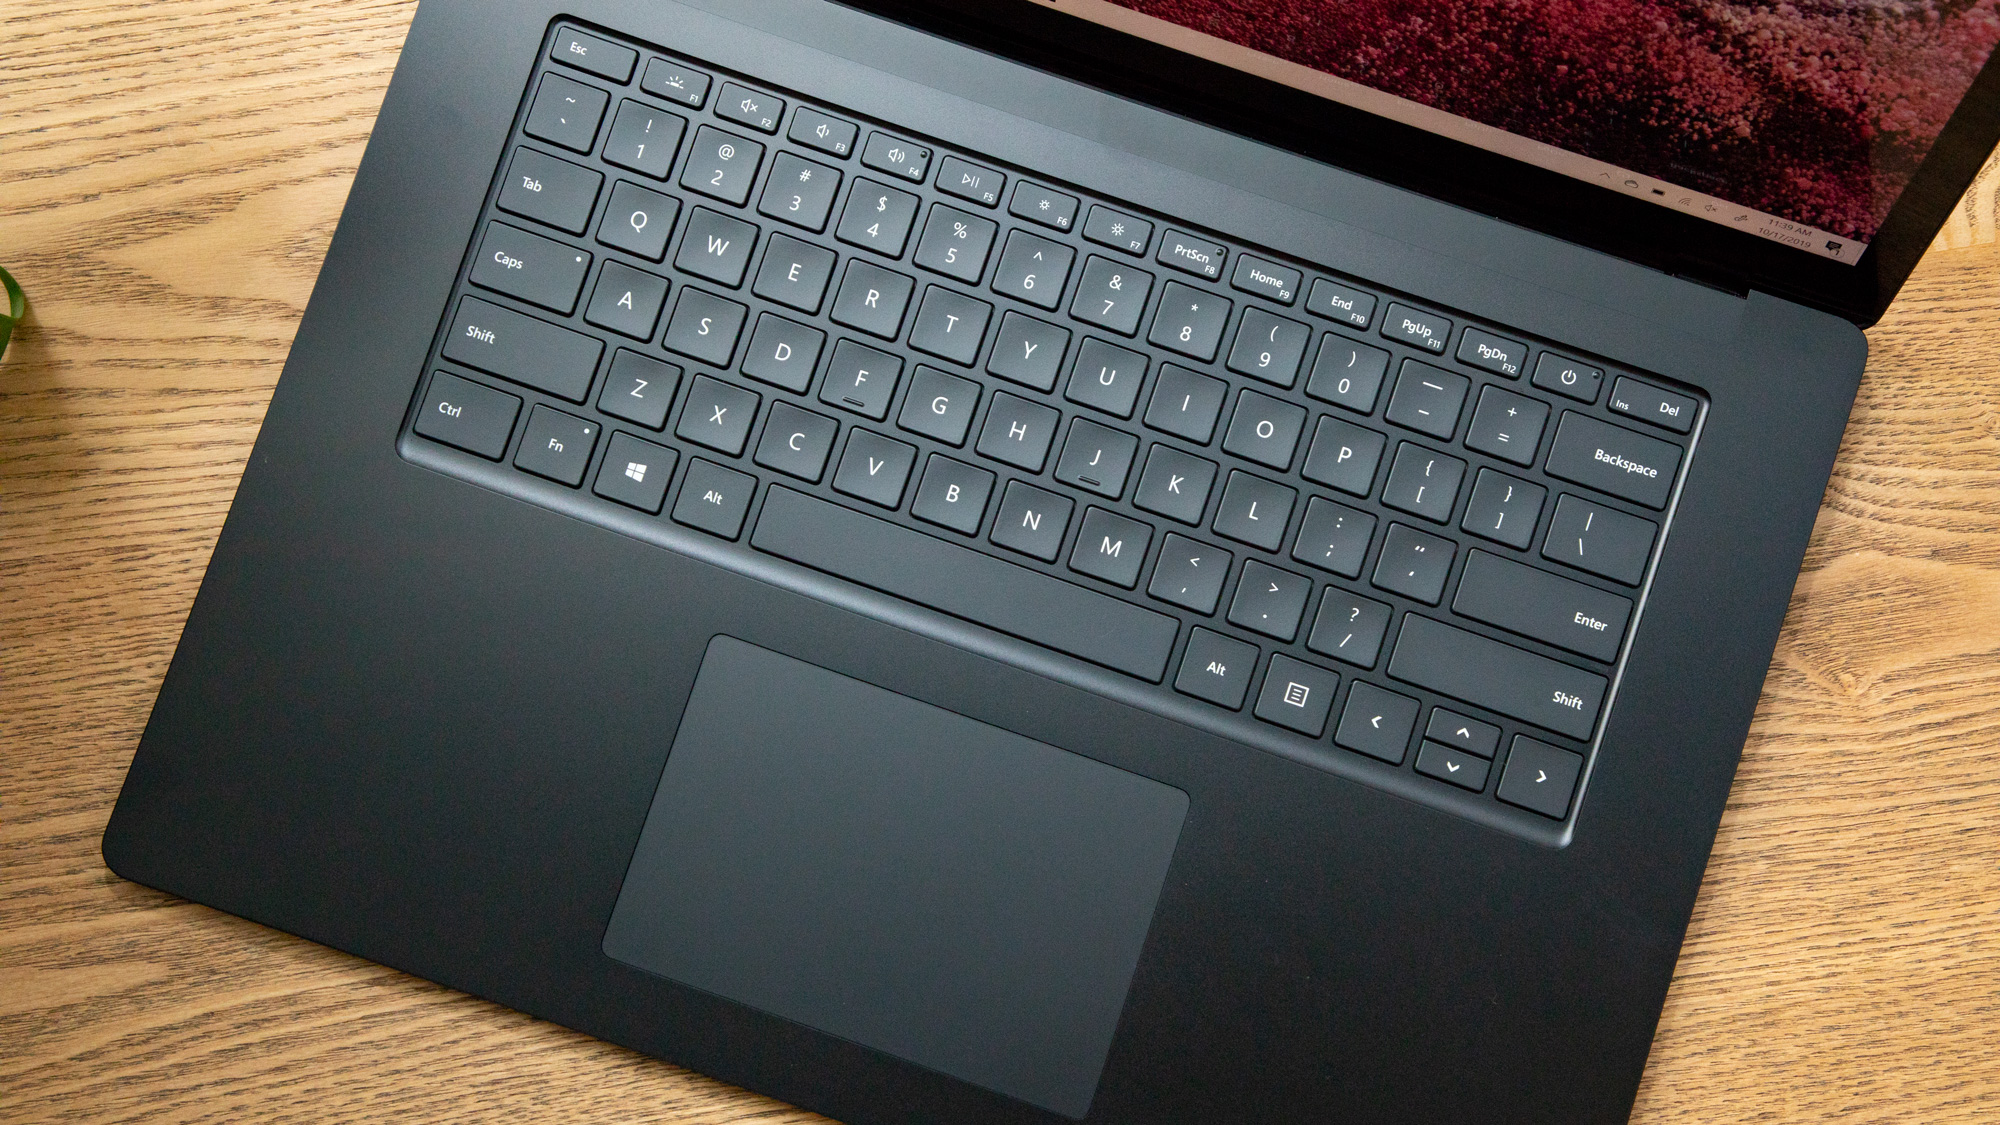 We rather enjoy the keyboard and trackpad as they are on the Surface Laptop 3.